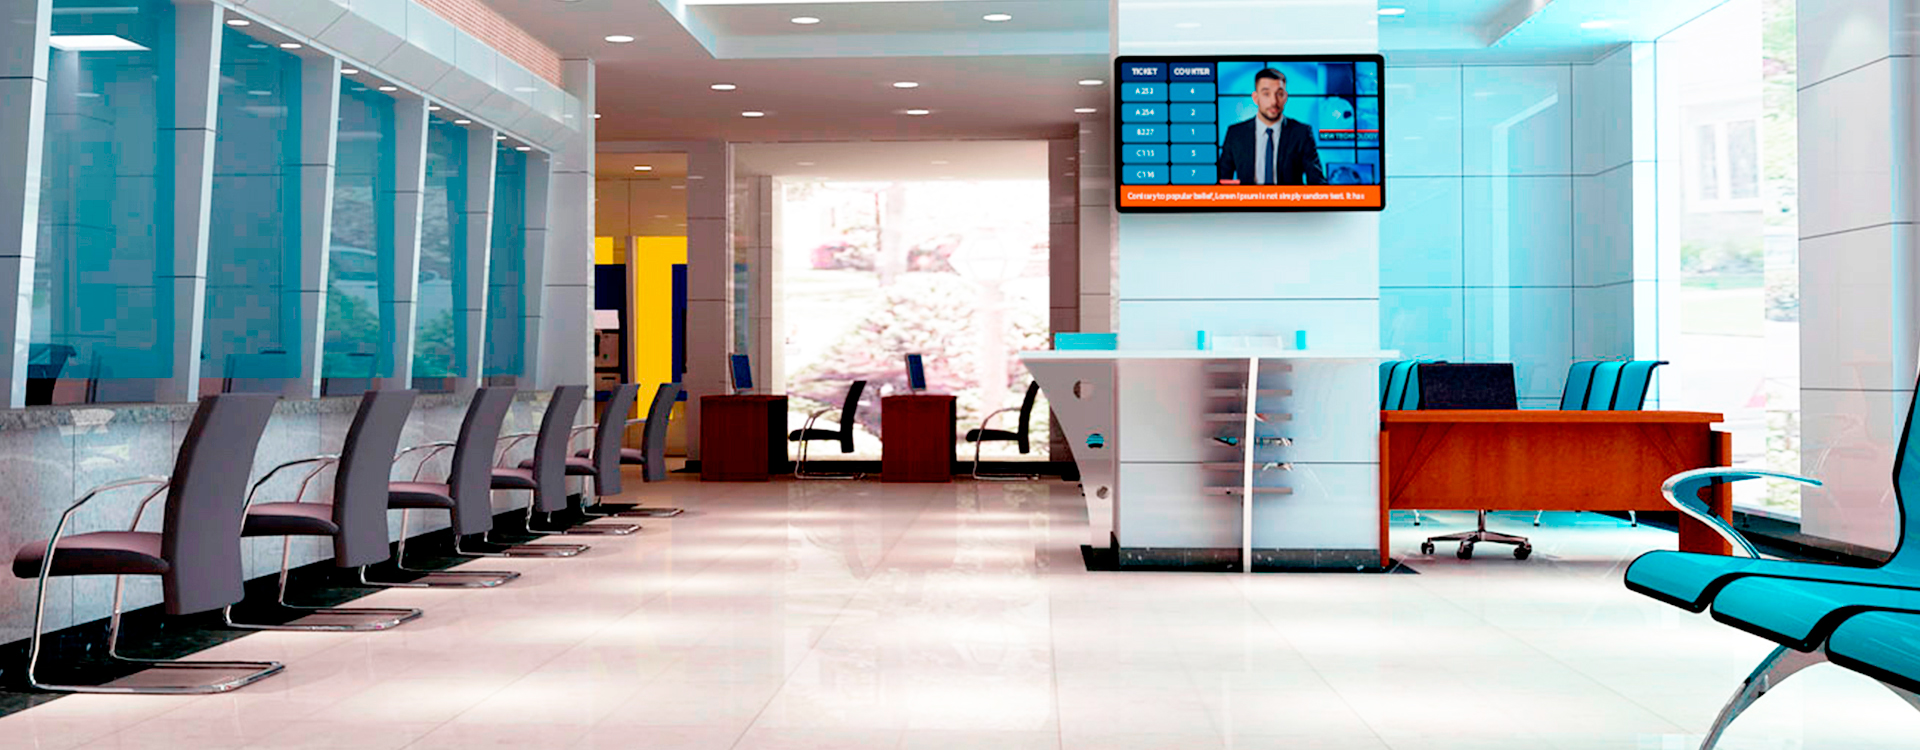 digital signage display in bank